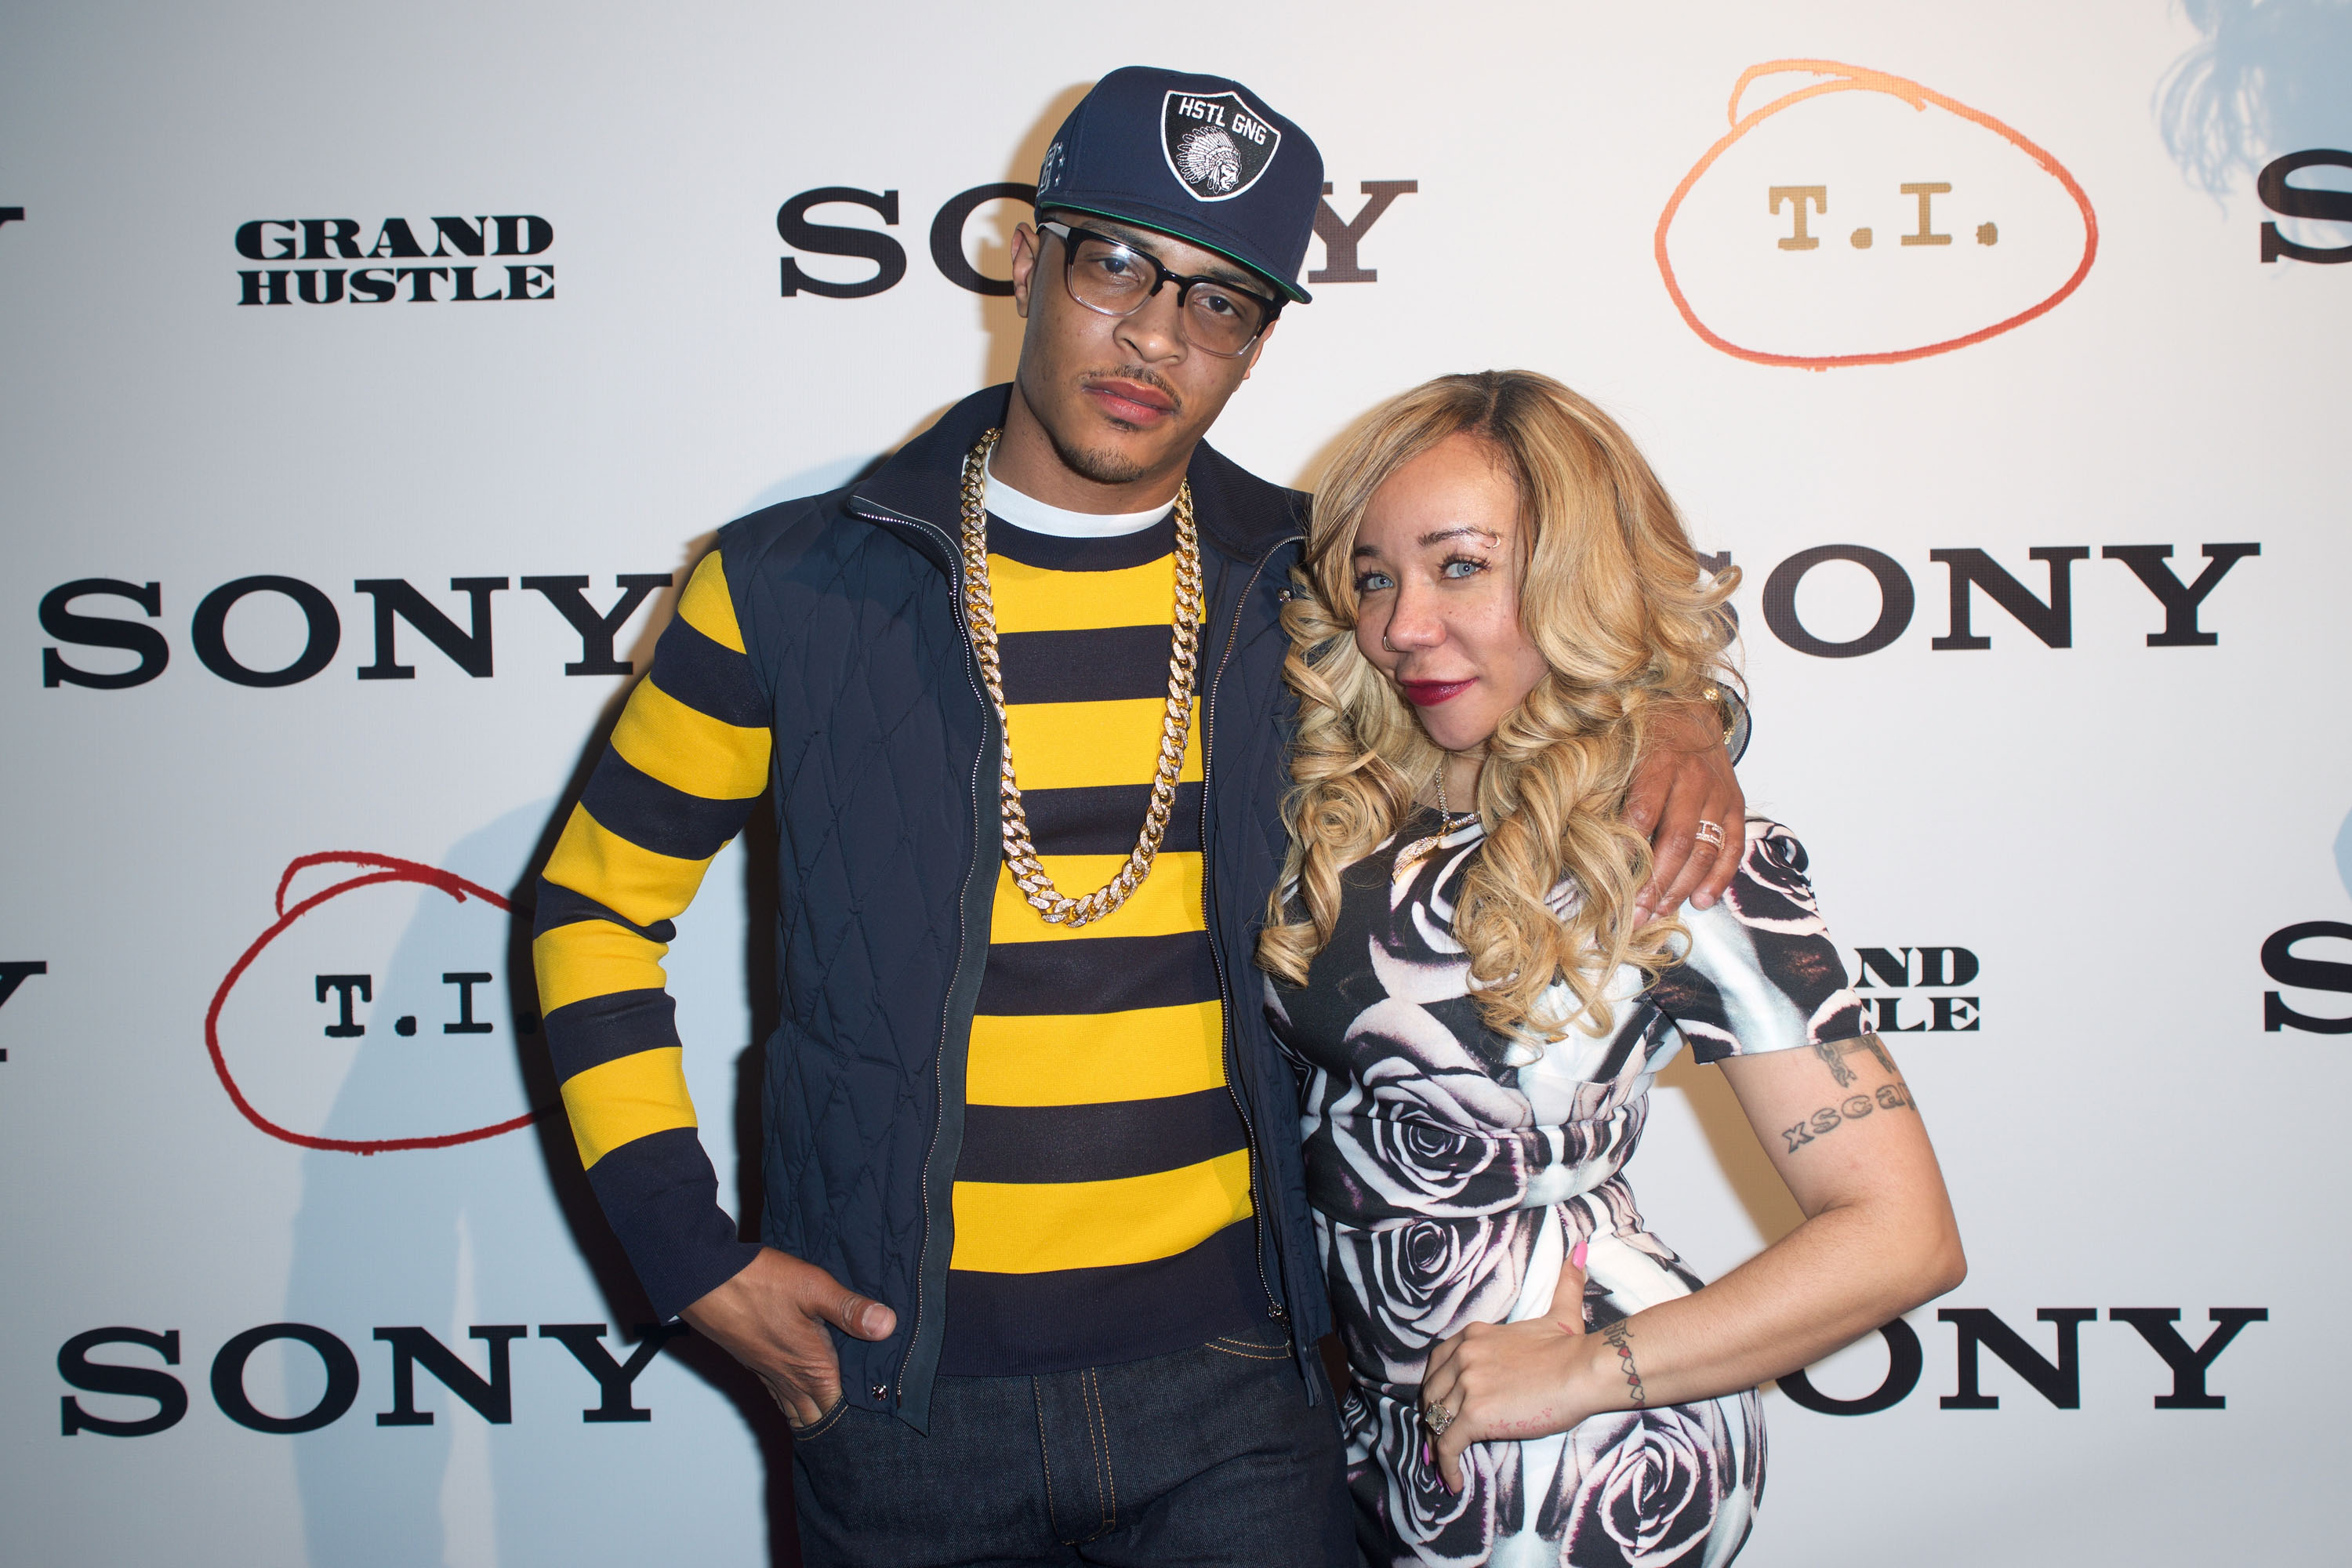 T.I. Private Grammy Weekend Concert - Hollywood, CA